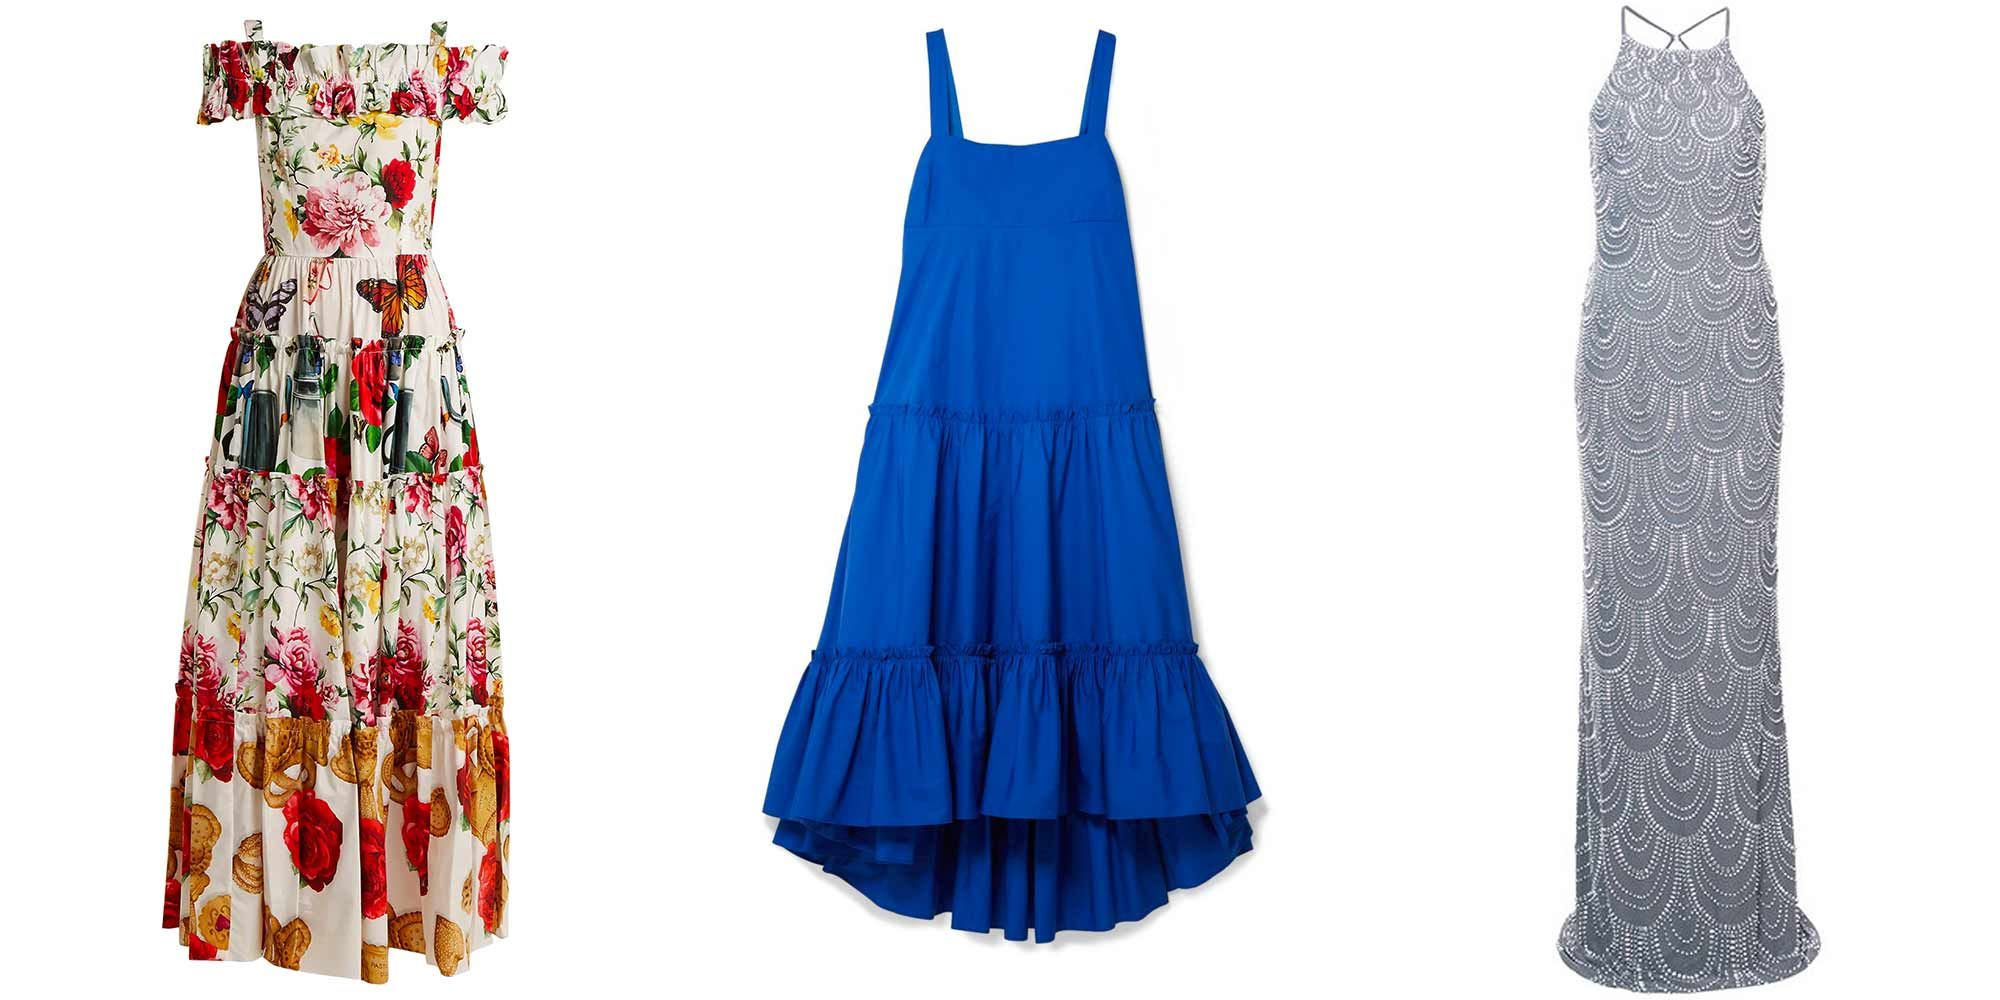 Dresses to Wear for a Casual Beach Wedding